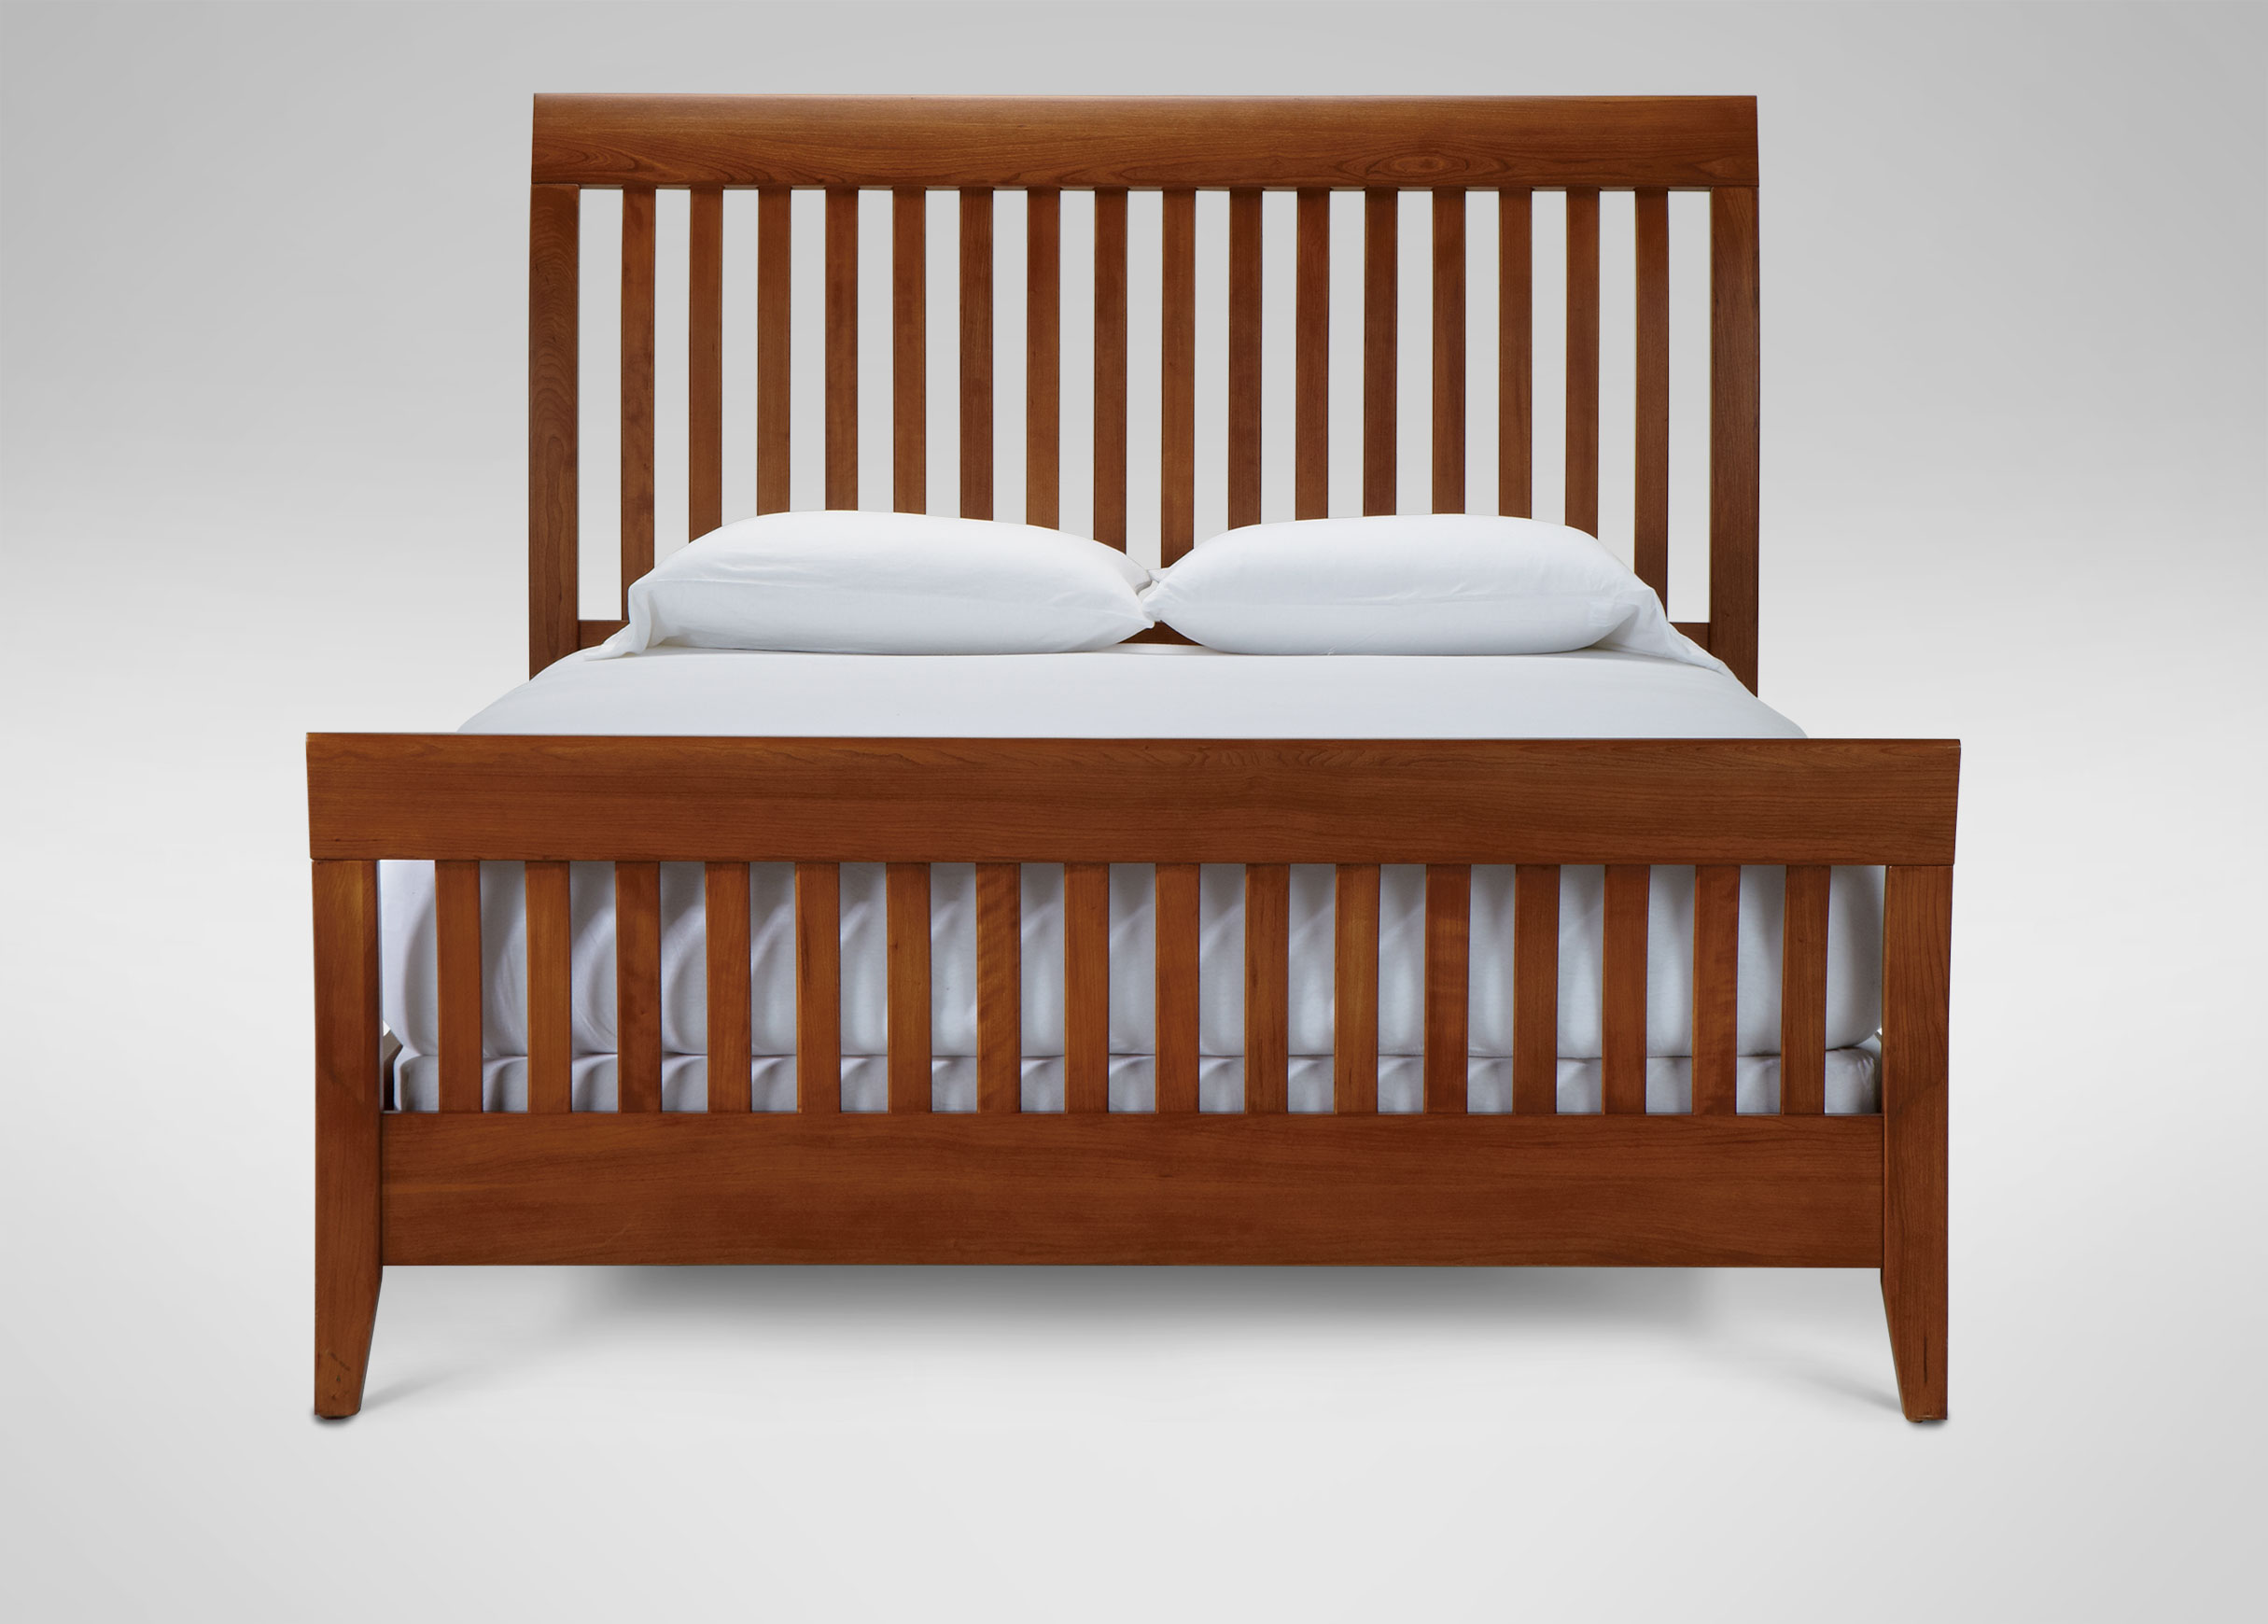 Teagan sleigh bed beds for Beds 4 u ottery